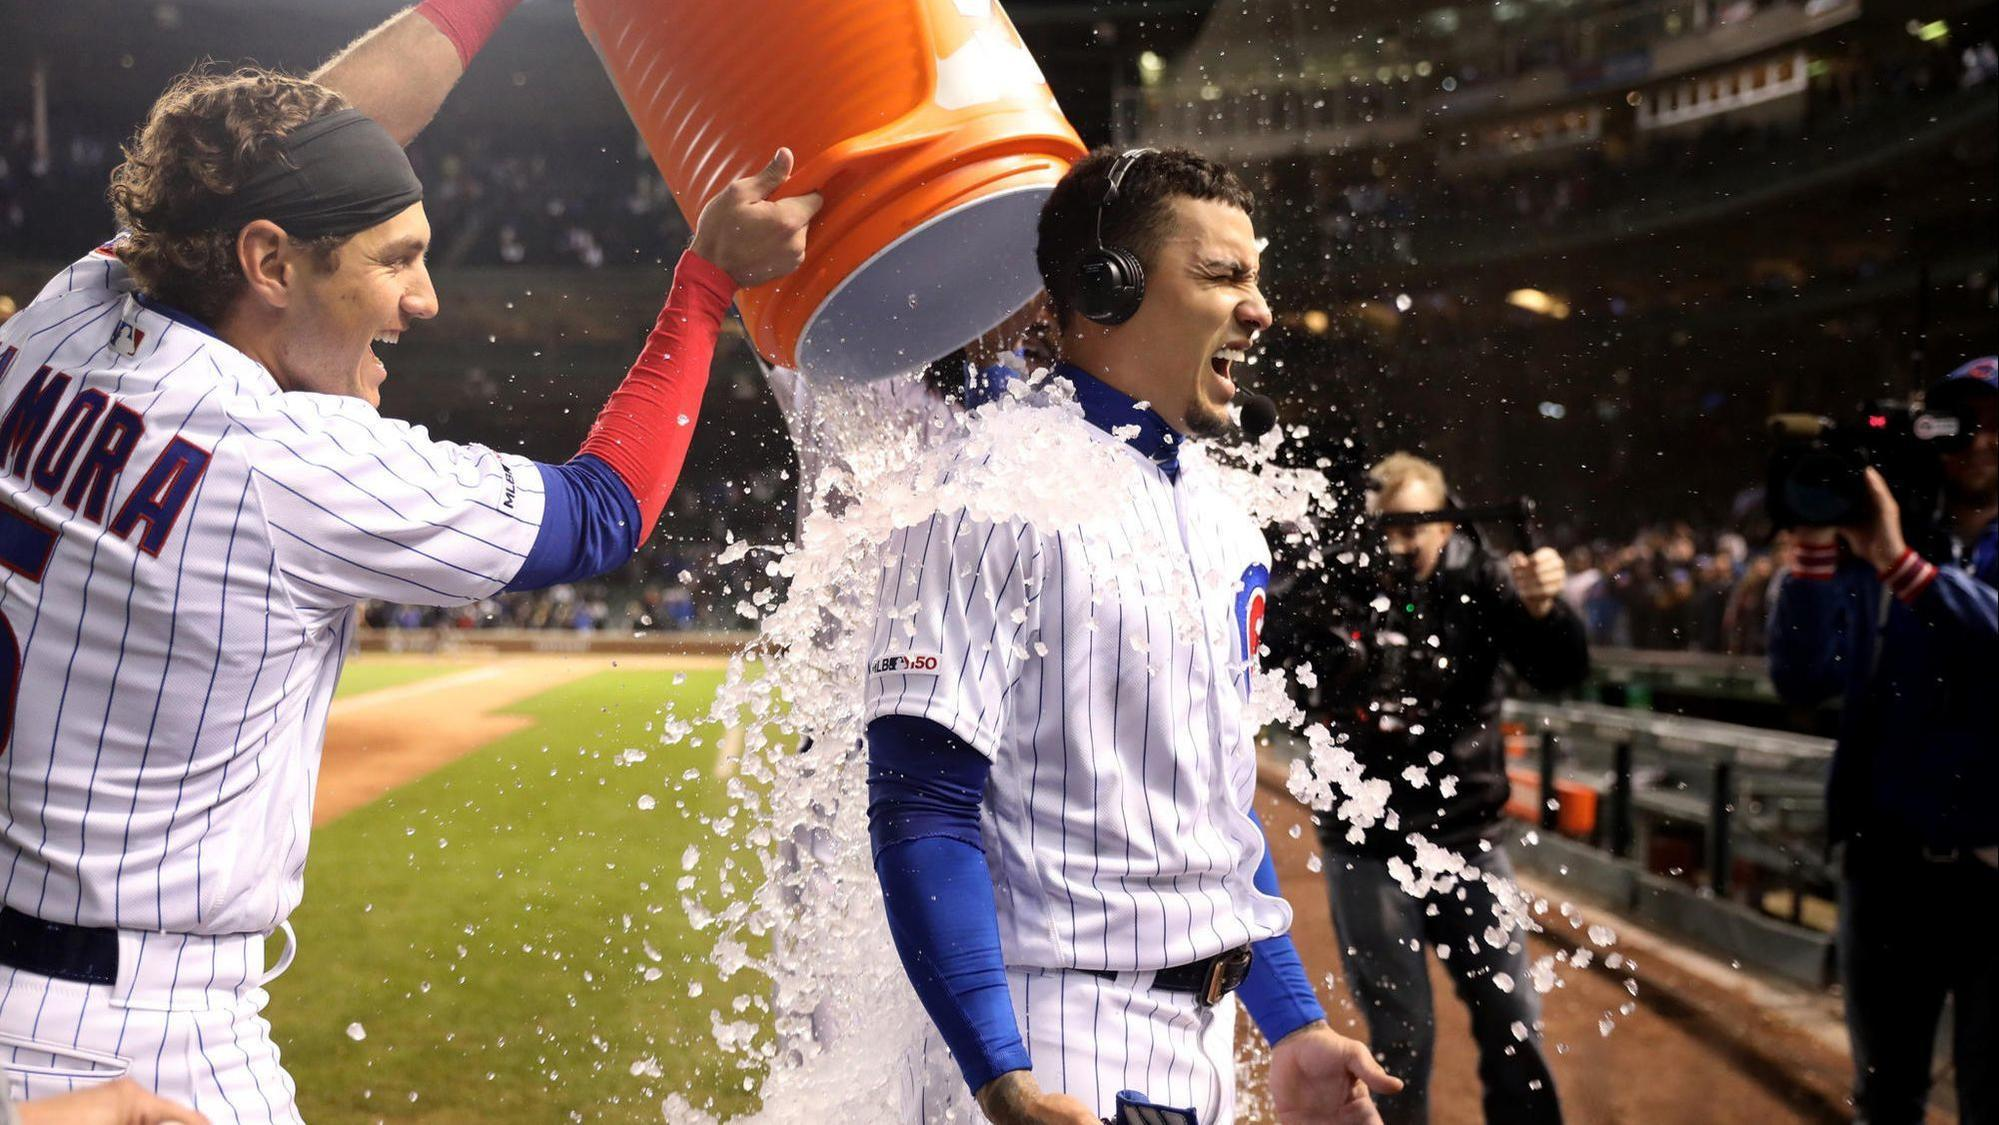 Cubs shortstop Javier Baez will miss his 2nd consecutive start tonight against the Phillies